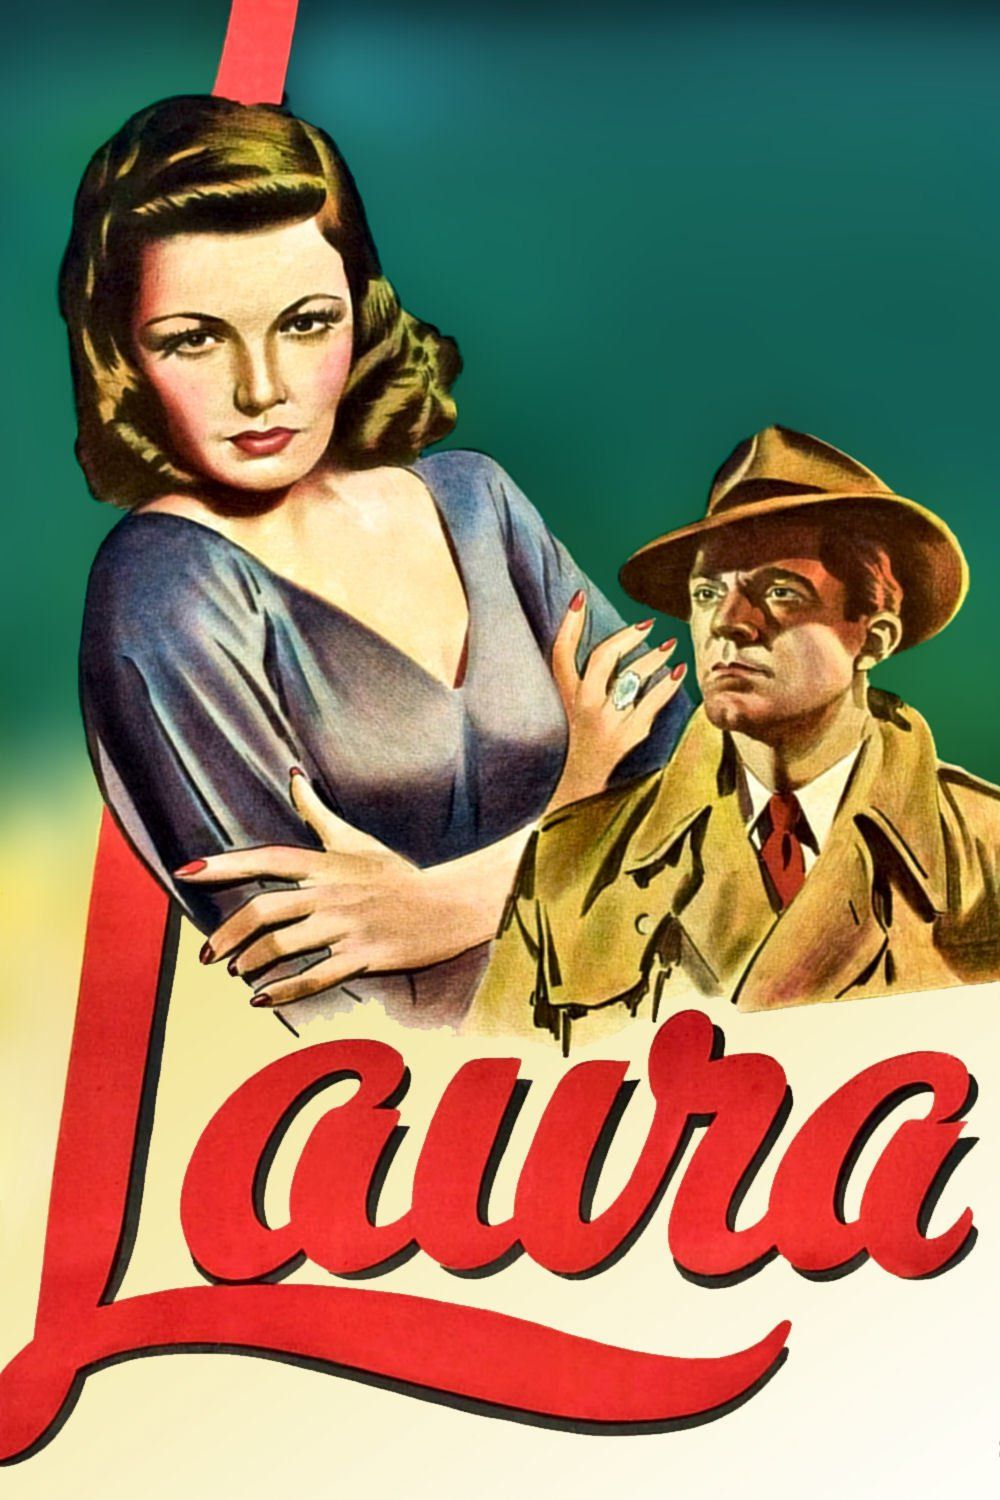 Watch Laura online at MovieRill Movies online, Full